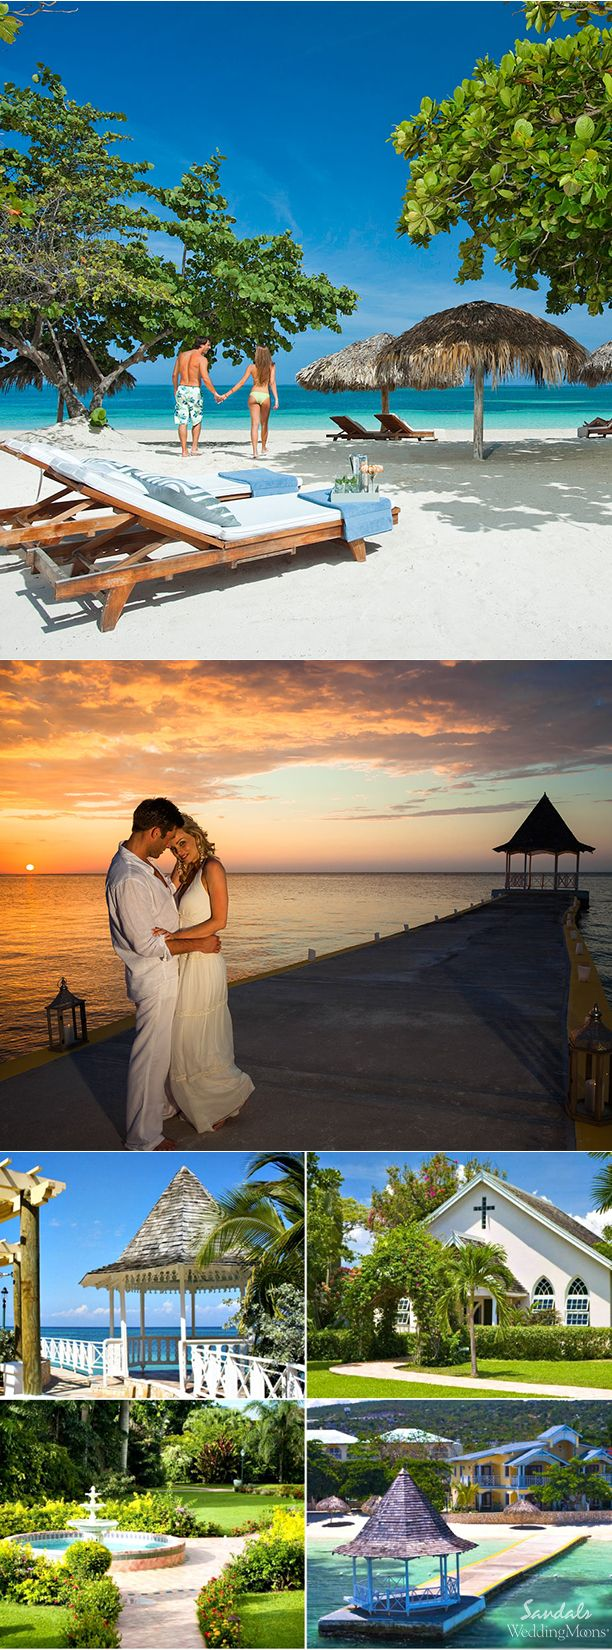 DESTINATION WEDDING LOCATIONS: SANDALS MONTEGO BAY A chapel and open courtyard gazebo are a few of the charming destination wedding locations at Sandals Montego Bay.